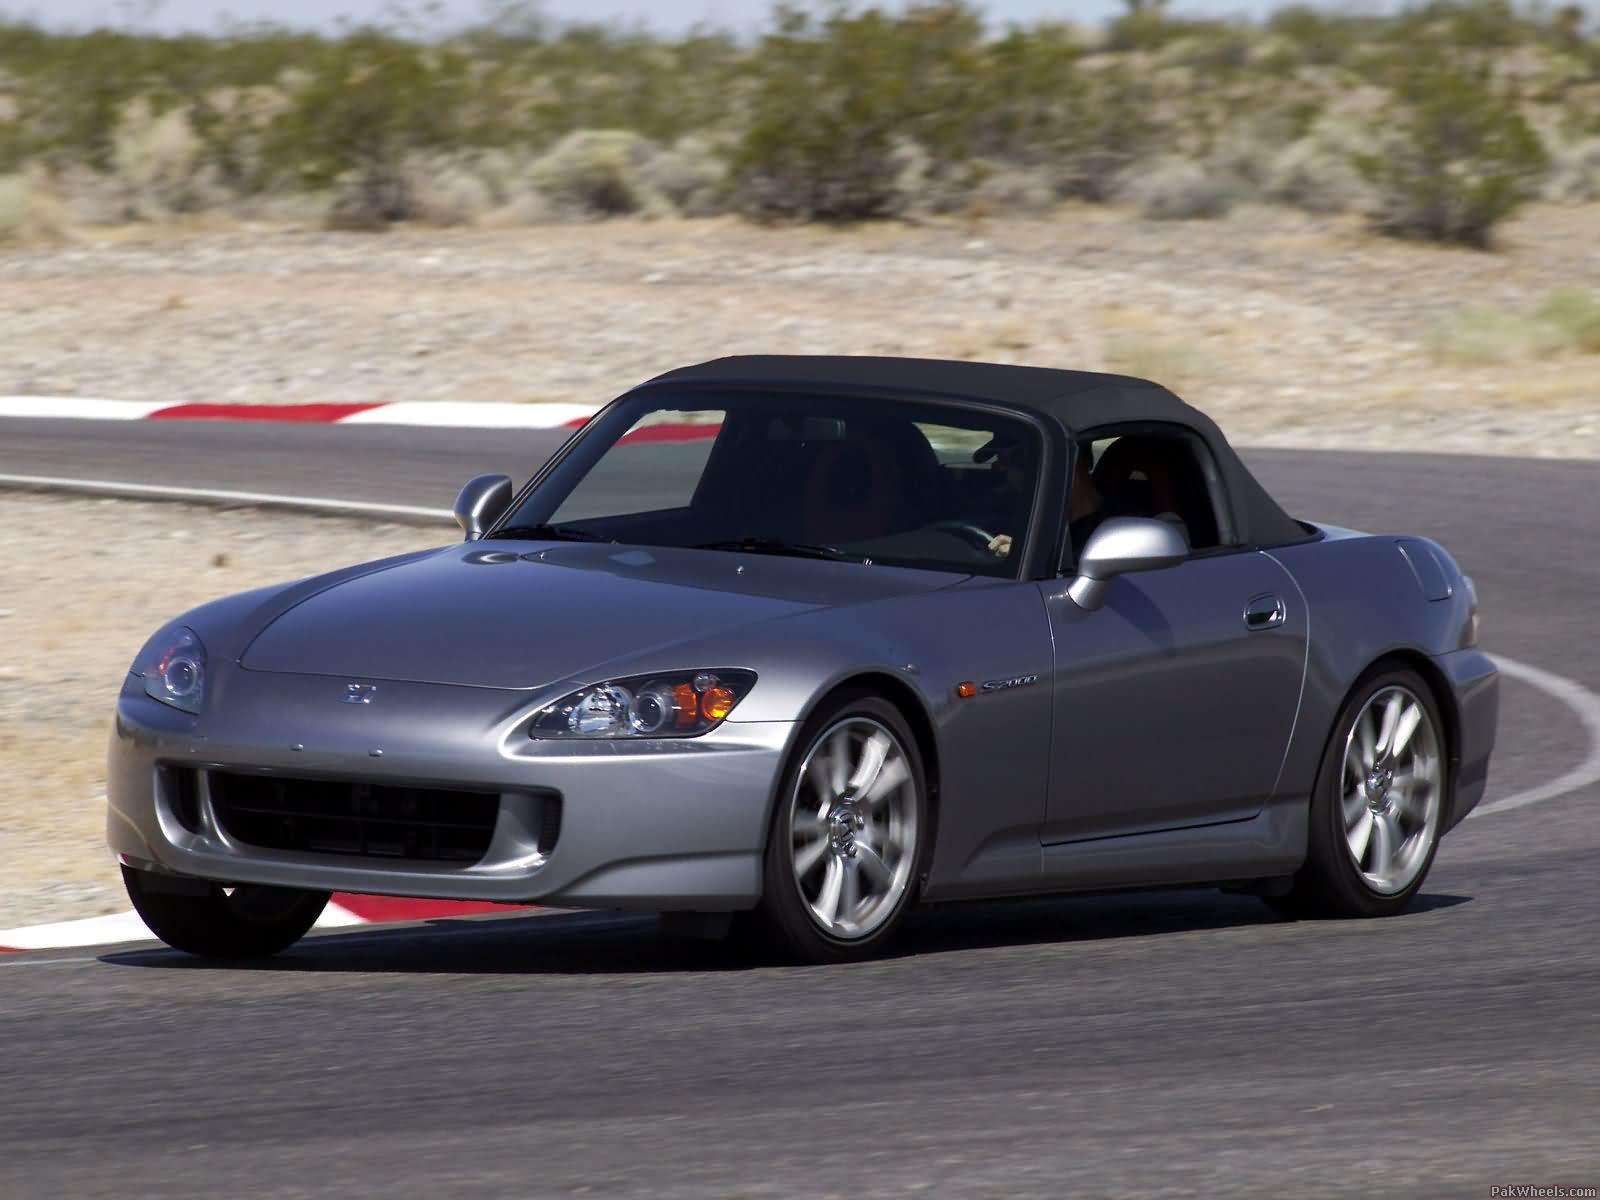 Wallpapers for Honda S2000 Best Wall Papers With Latest Collection 1600x1200